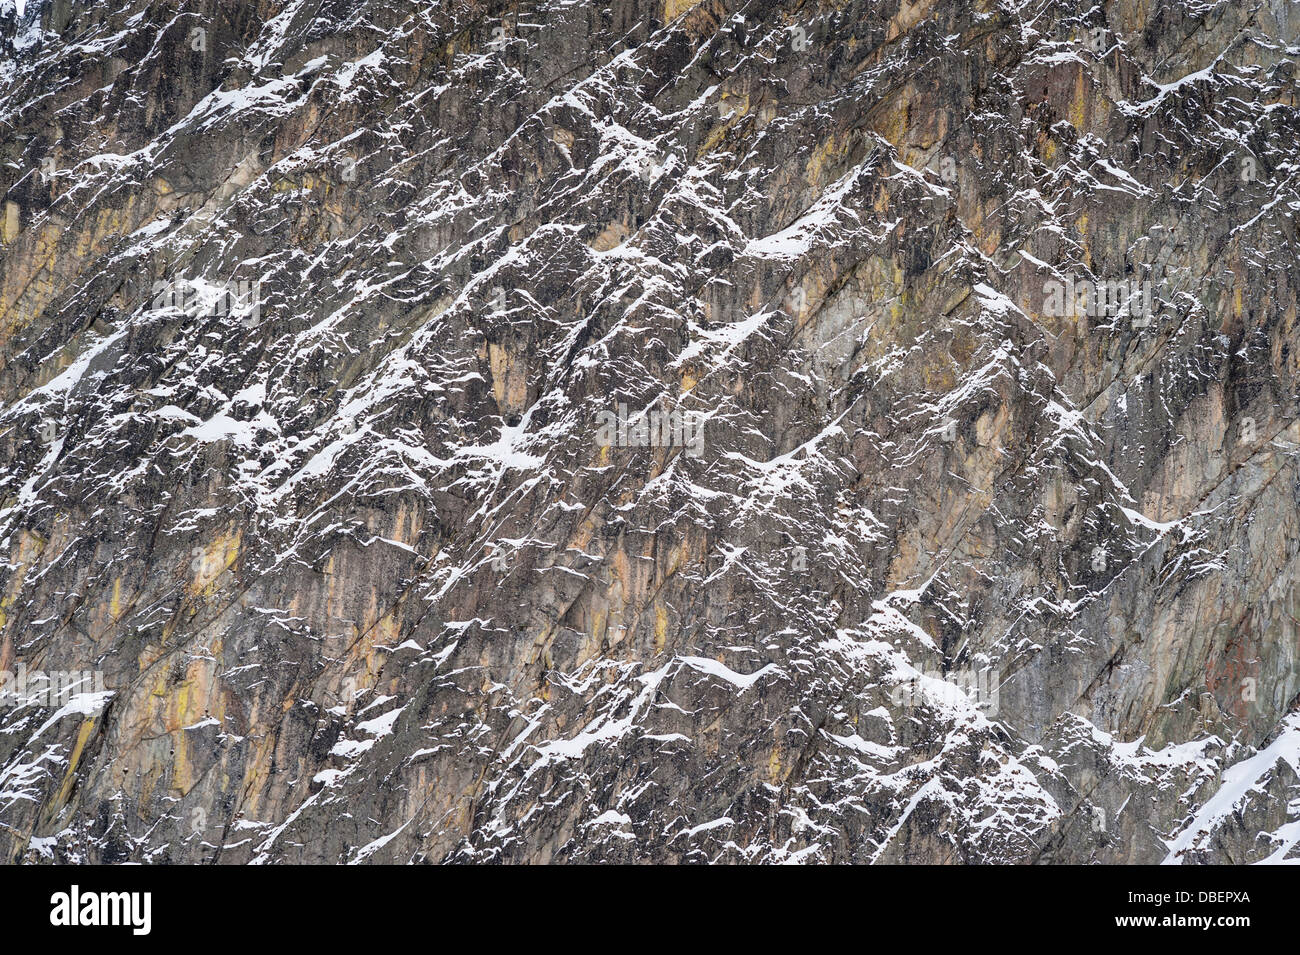 abtract structure in winter mountains, detail - Stock Image